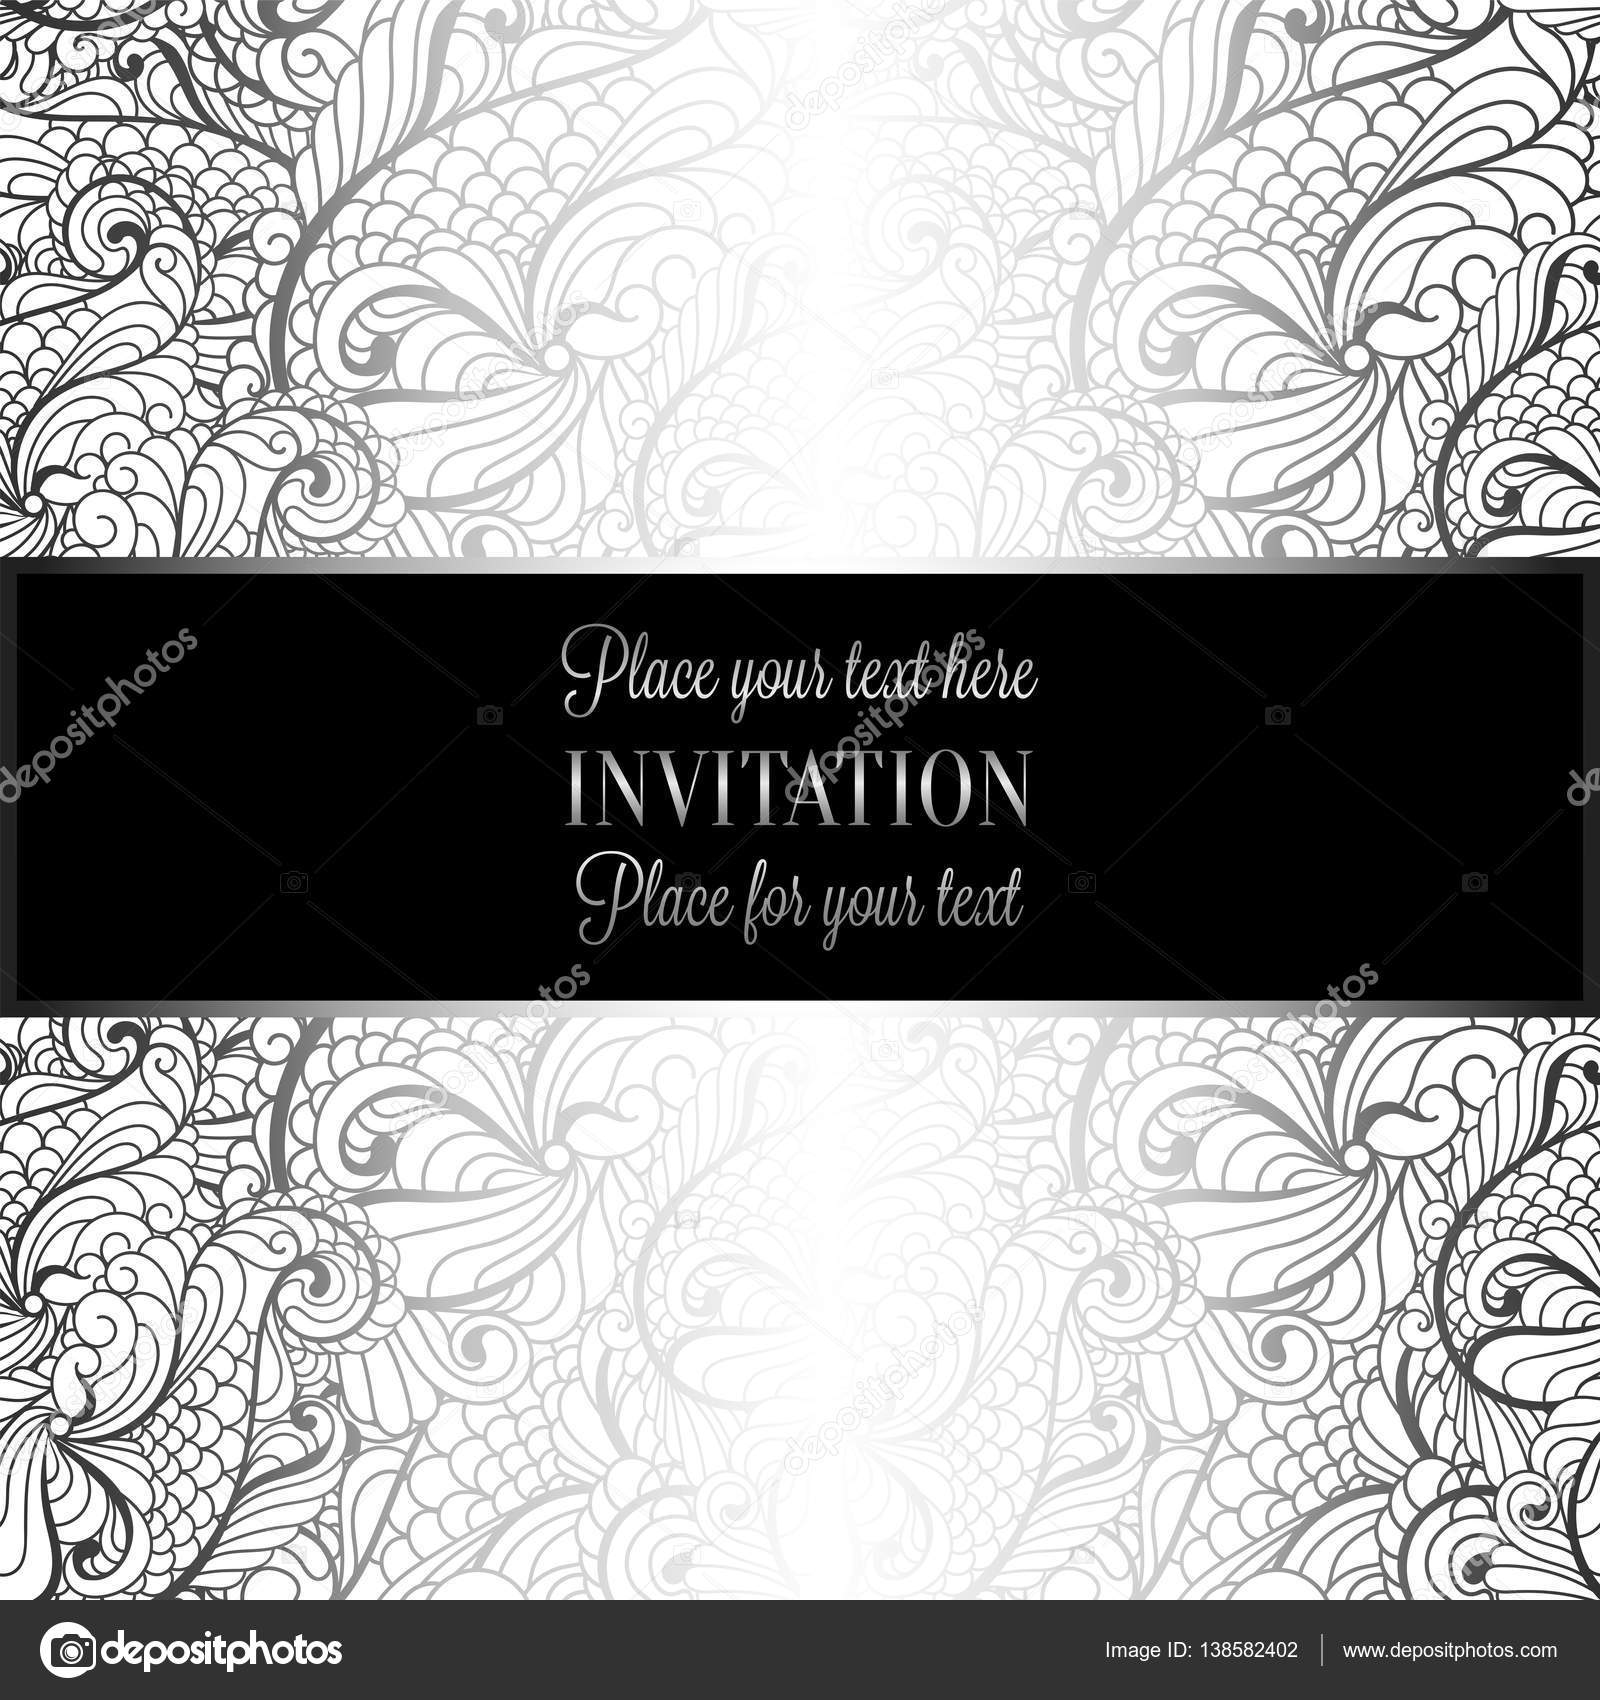 Baroque Background With Antique Luxury White And Silver Vintage Frame Victorian Banner Damask